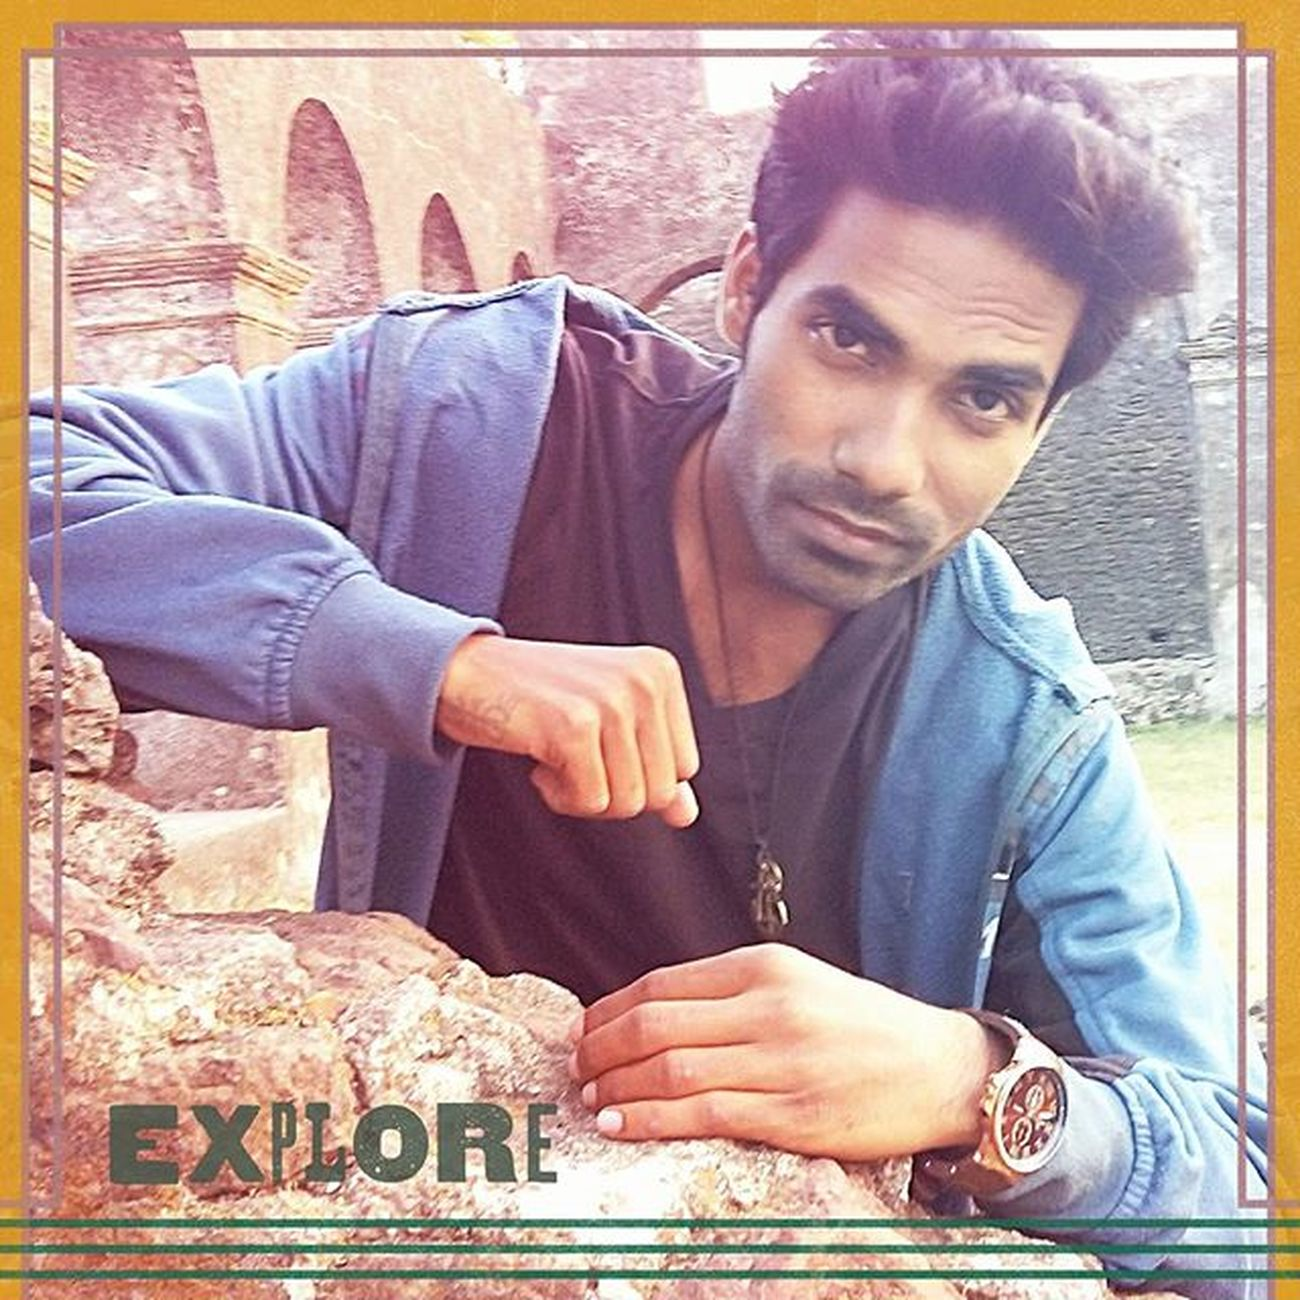 """You always stop and stare, why not just take a picture of me ?"" Mrrob Robinraj Mrcool Awesome DamanJT Fort Cool Explore Edit Eknö Photopose Outdoor Photography Best  Ever"